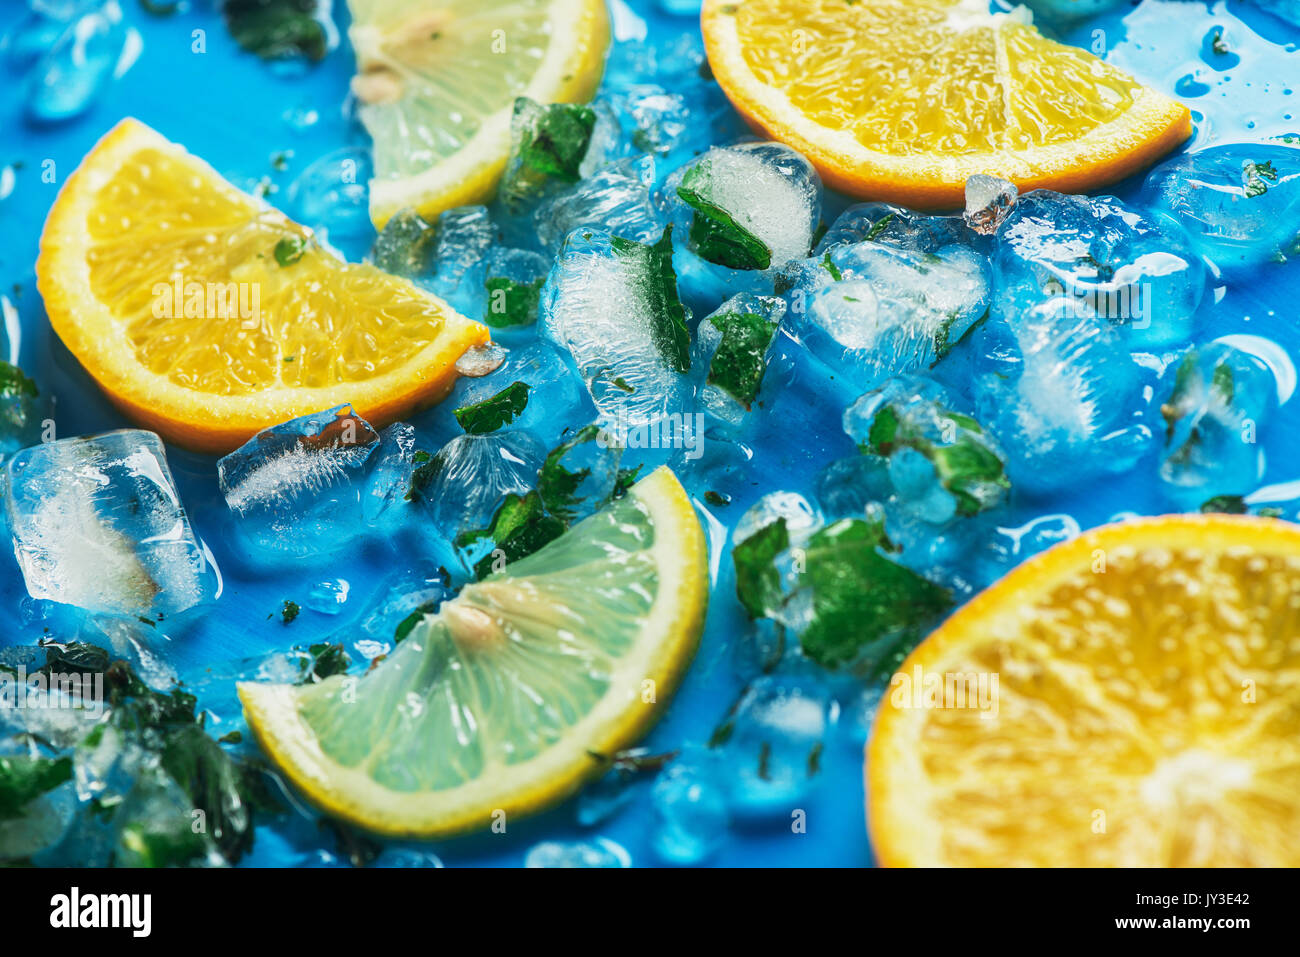 Close-up of sliced oranges and lemons on a blue background with ice cubes - Stock Image